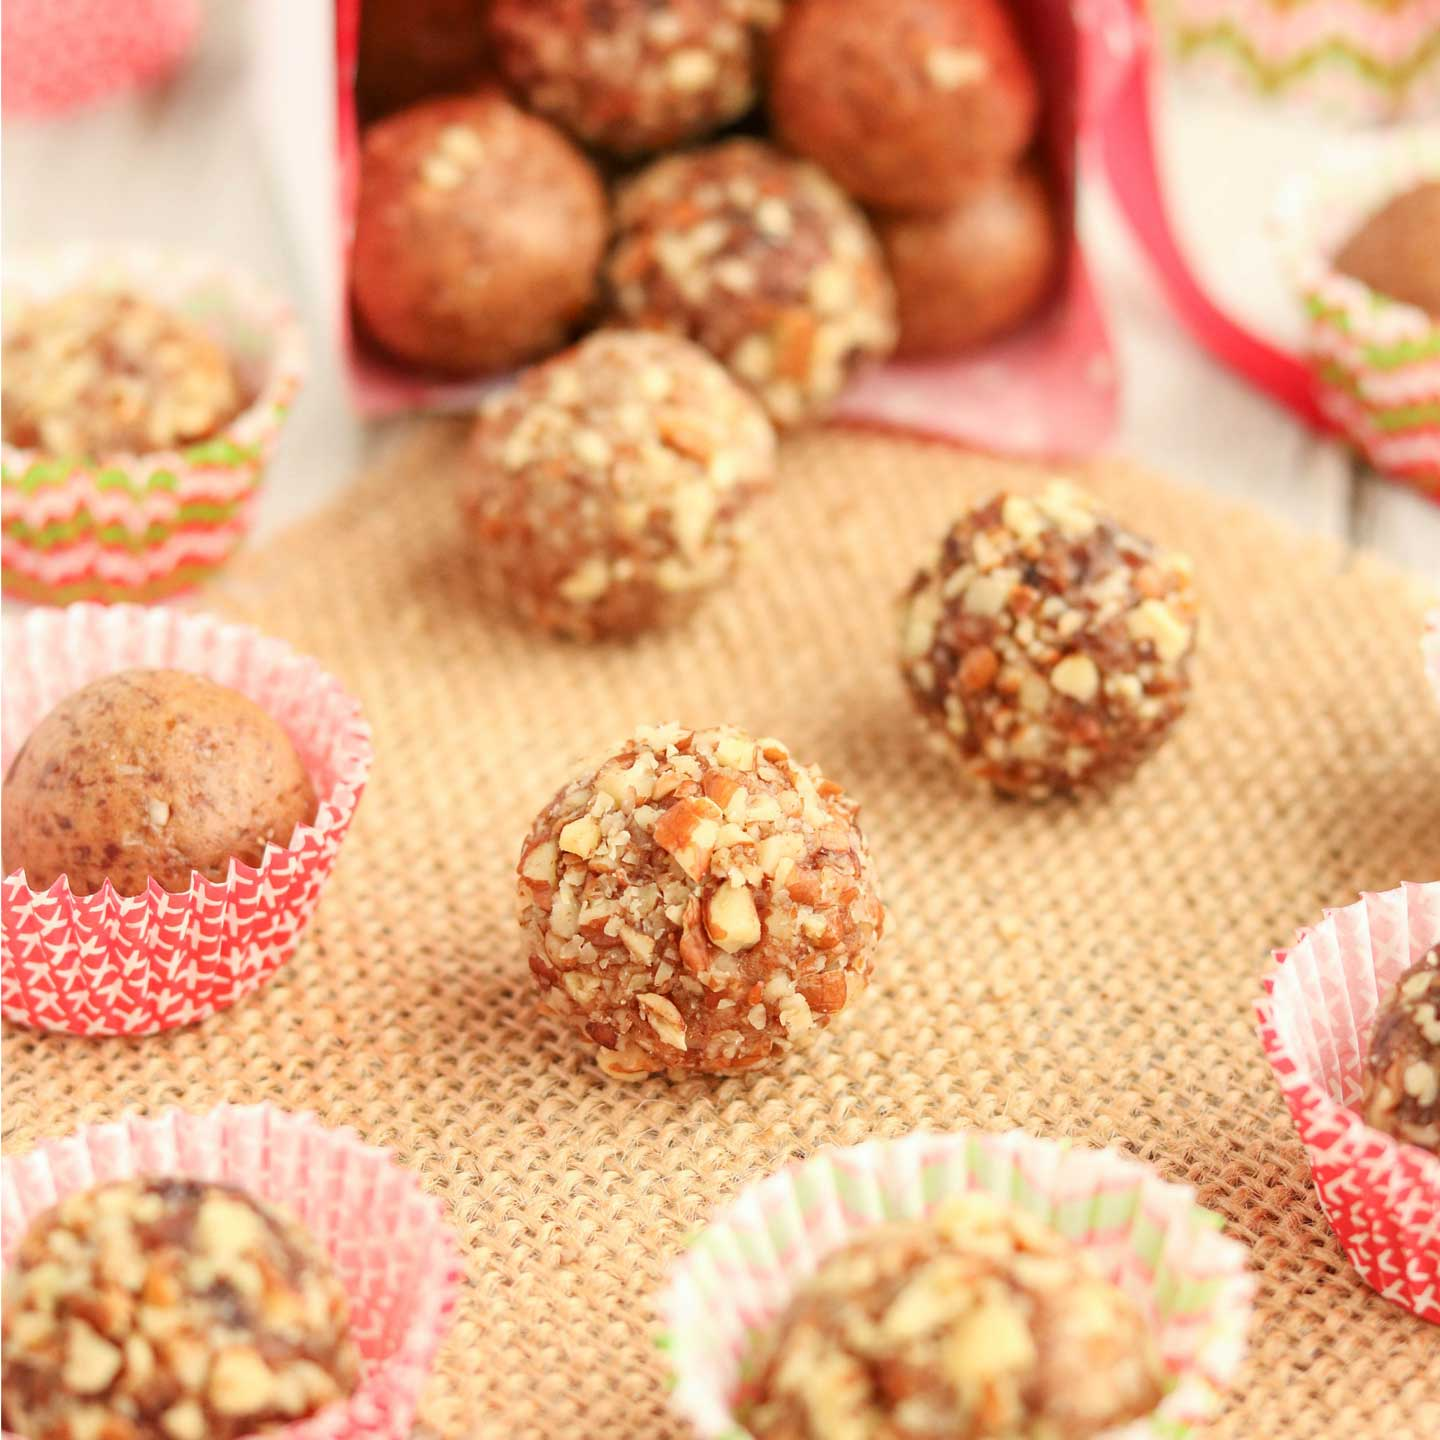 Easy no-bake holiday treats! These delicious Gingerbread Date Balls take just minutes to make! They're filled with yummy, holiday gingerbread spices - indulgent enough for holiday desserts or for pretty Christmas cookie trays, yet nutritious enough for a healthy snack! No guilt in these little indulgences! Bonus: since this date ball recipe is so quick and can be made ahead and frozen, it's perfect for last-minute, homemade DIY gifts, too! Can be made nut-free.   www.TwoHealthyKitchens.com